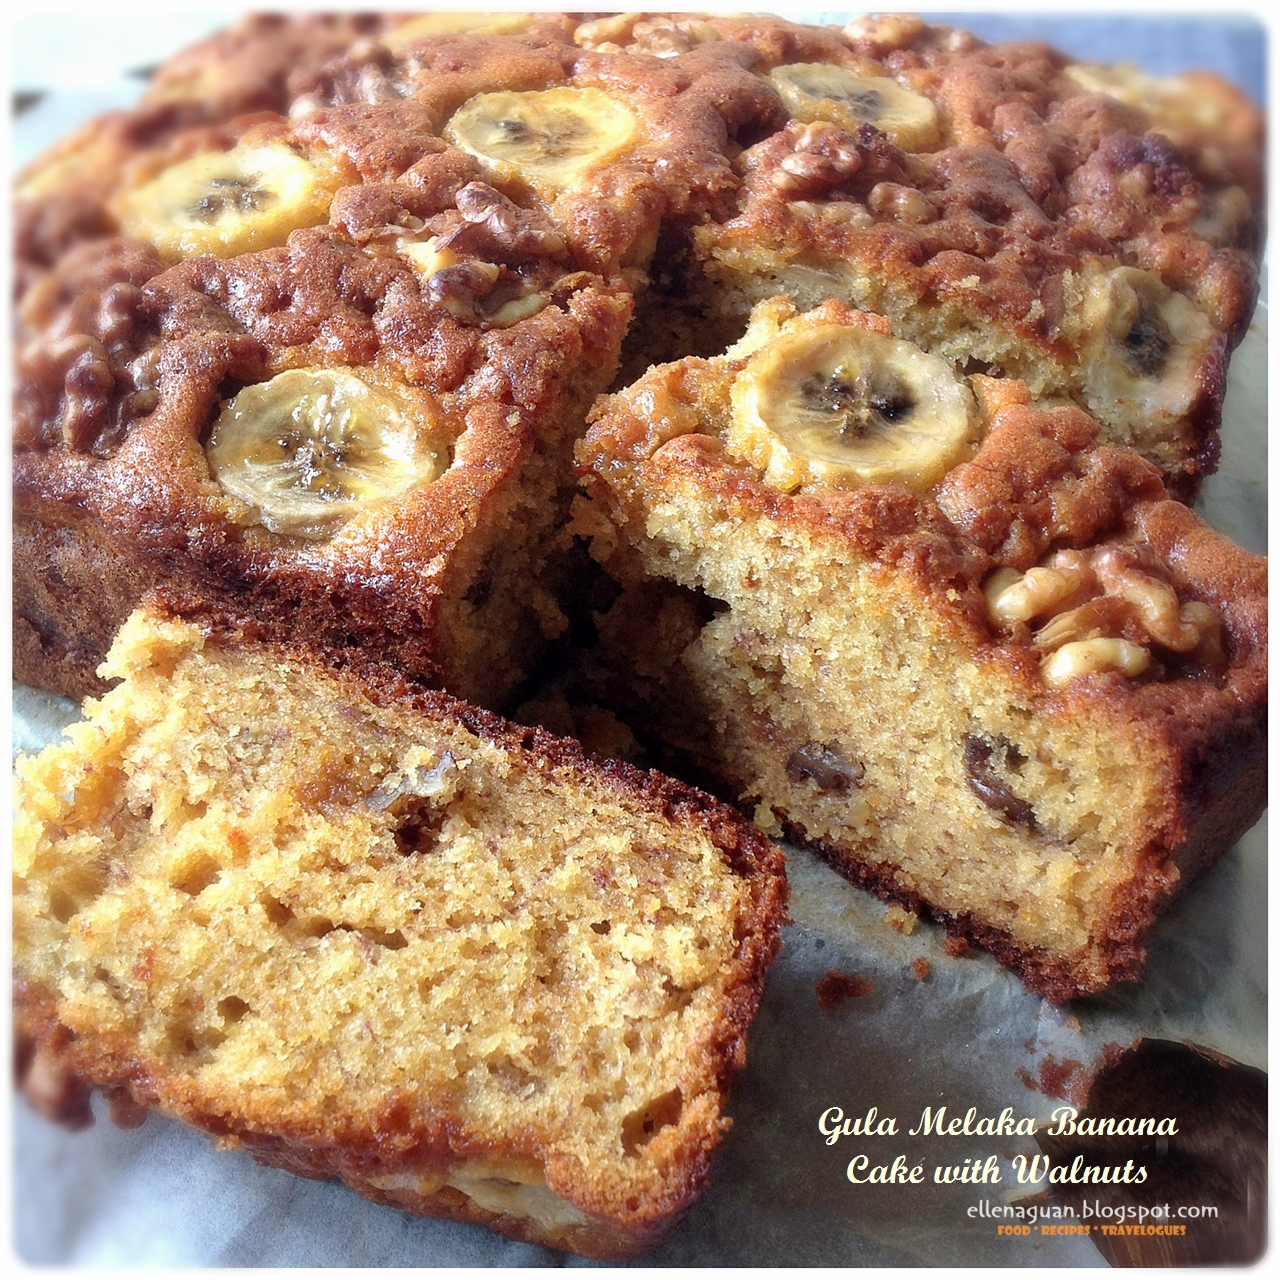 Recipe for banana and nut cake